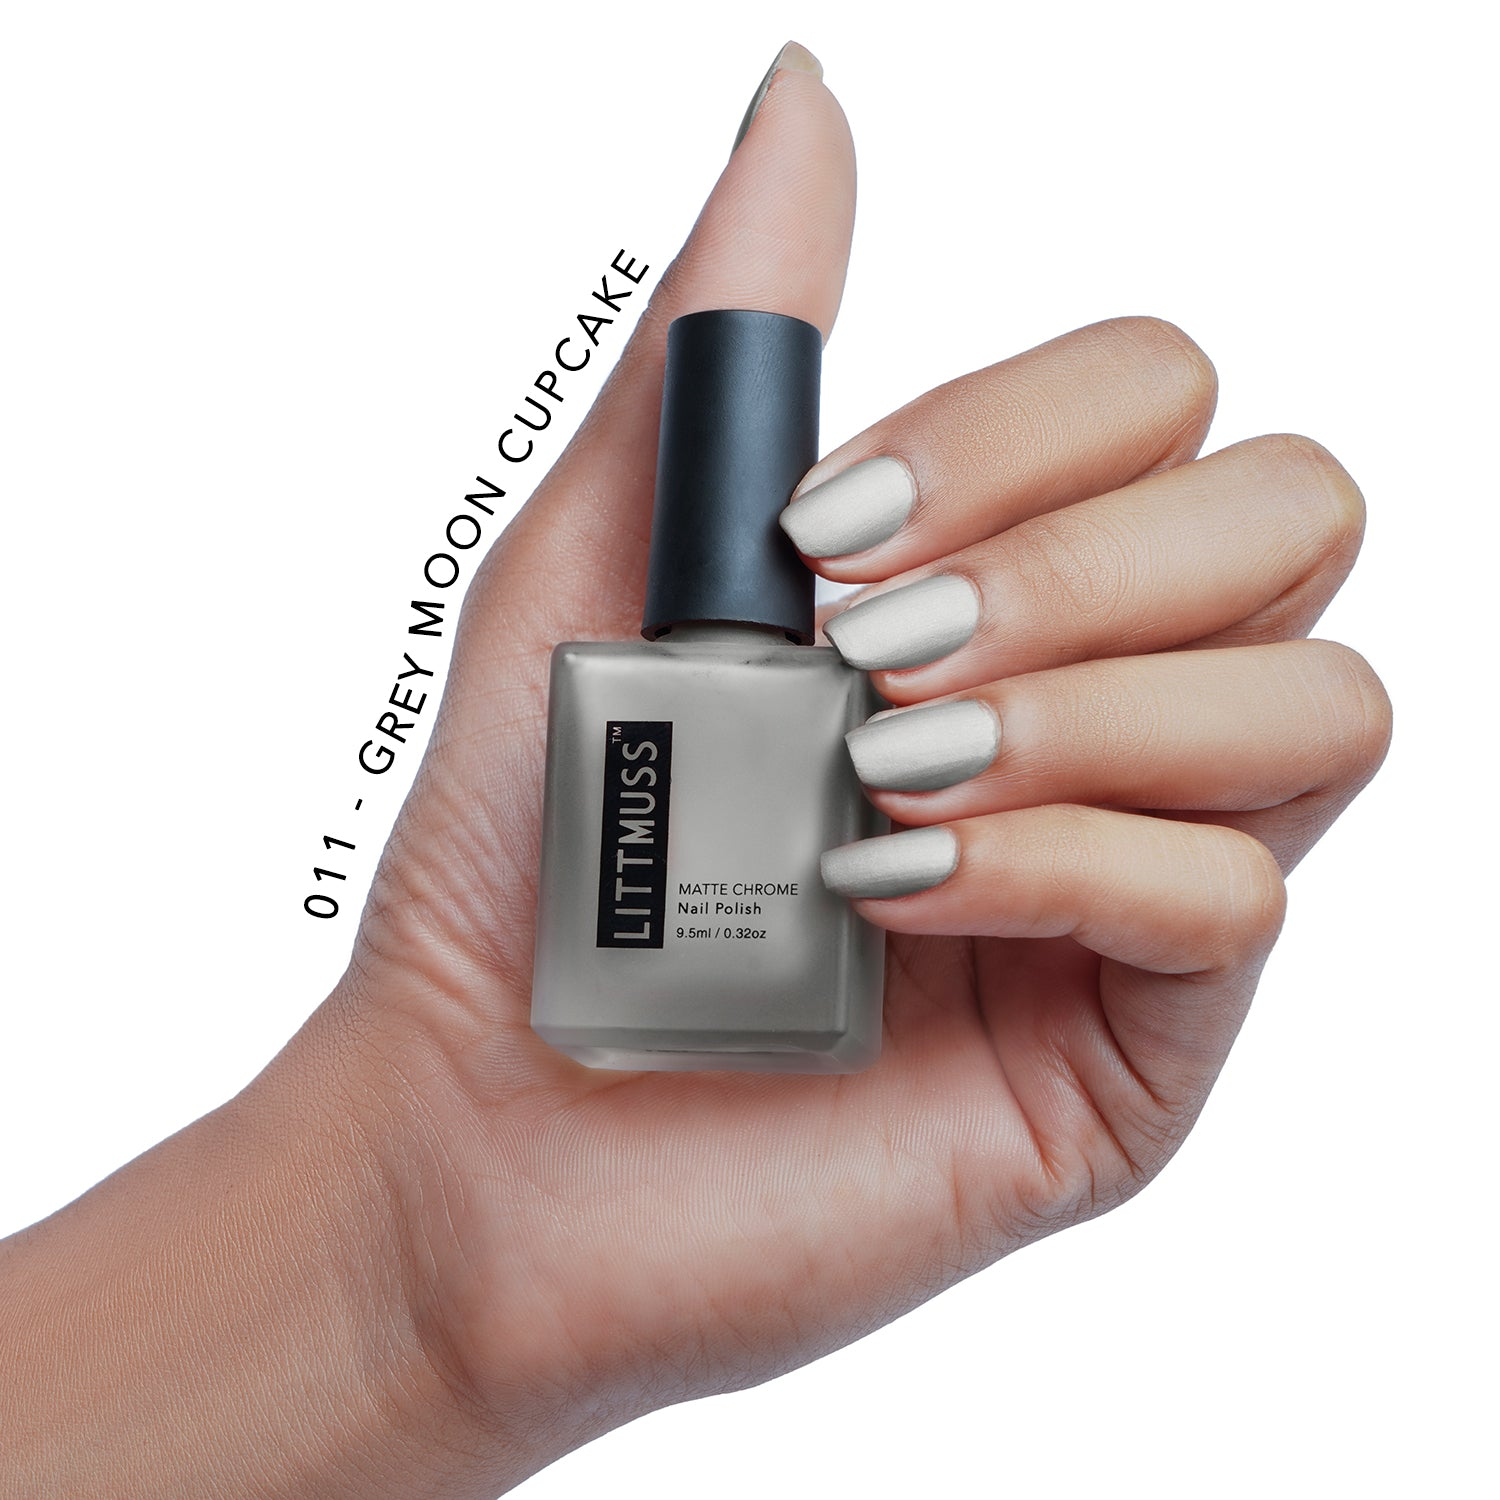 LITTMUSS Matte Chrome Nail Polish Grey Moon Cupcake -011